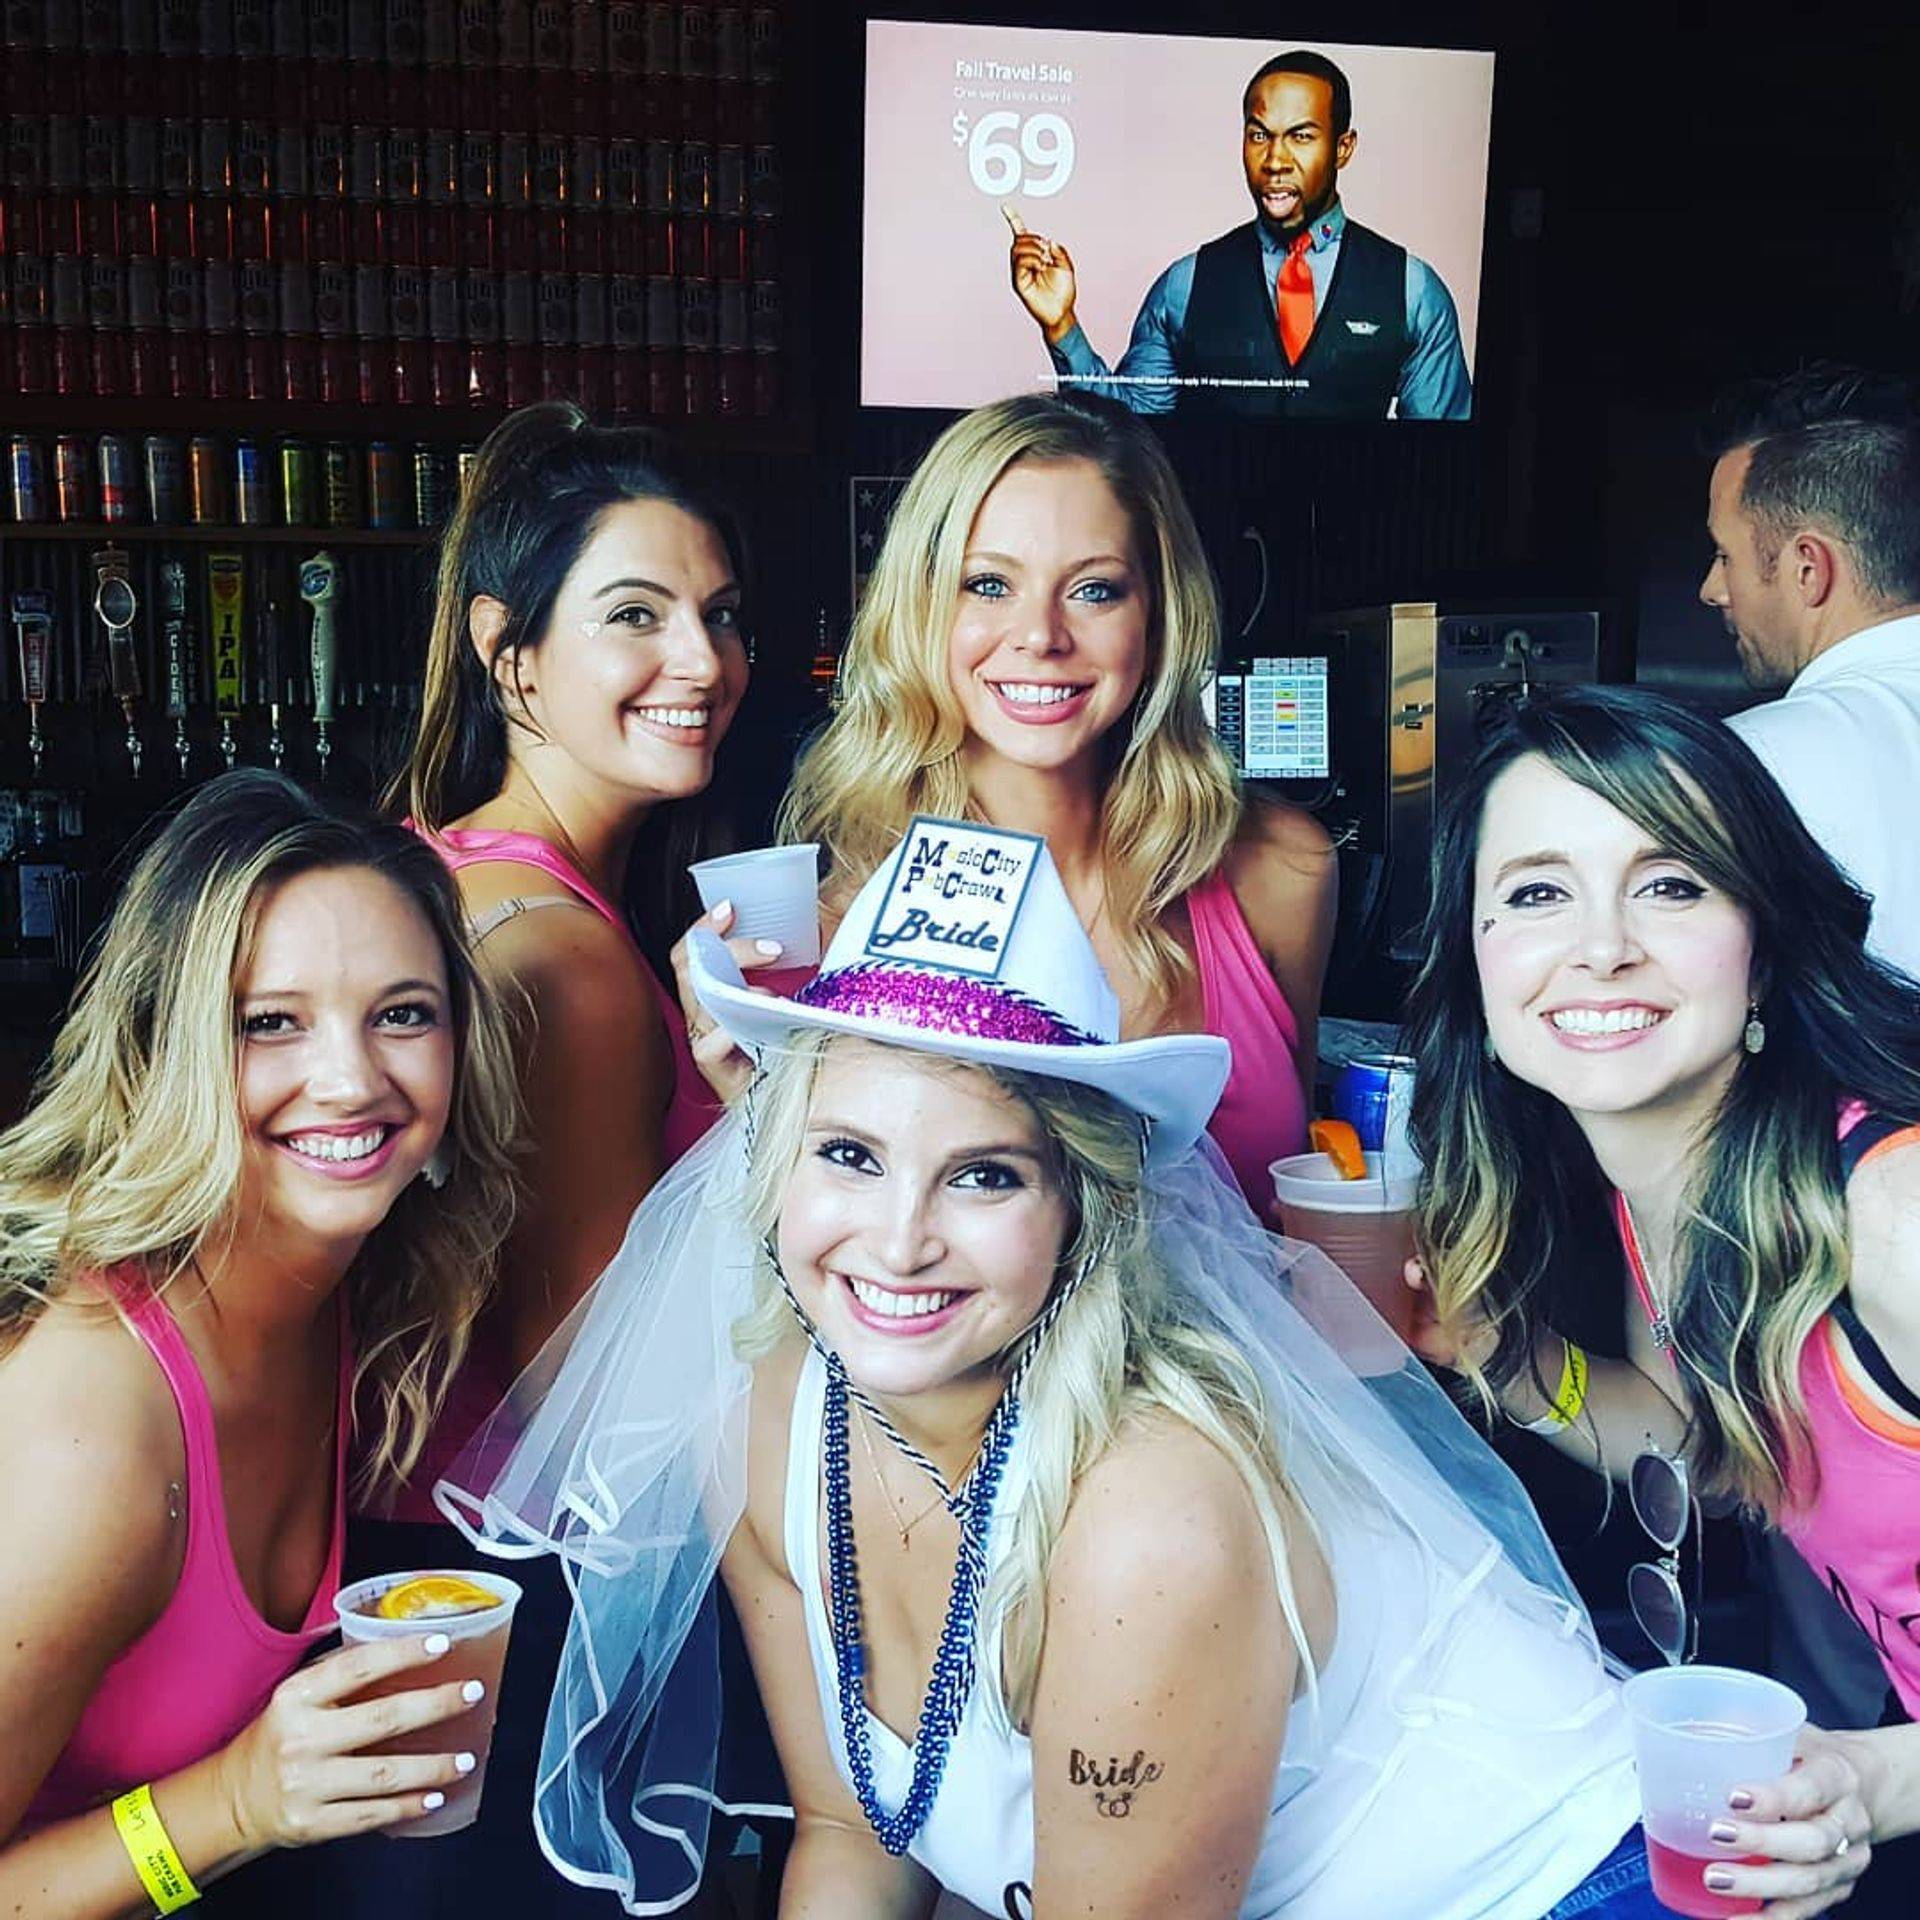 Nicole celebrated her Nashville bachleorette party with Music City Pub Crawl